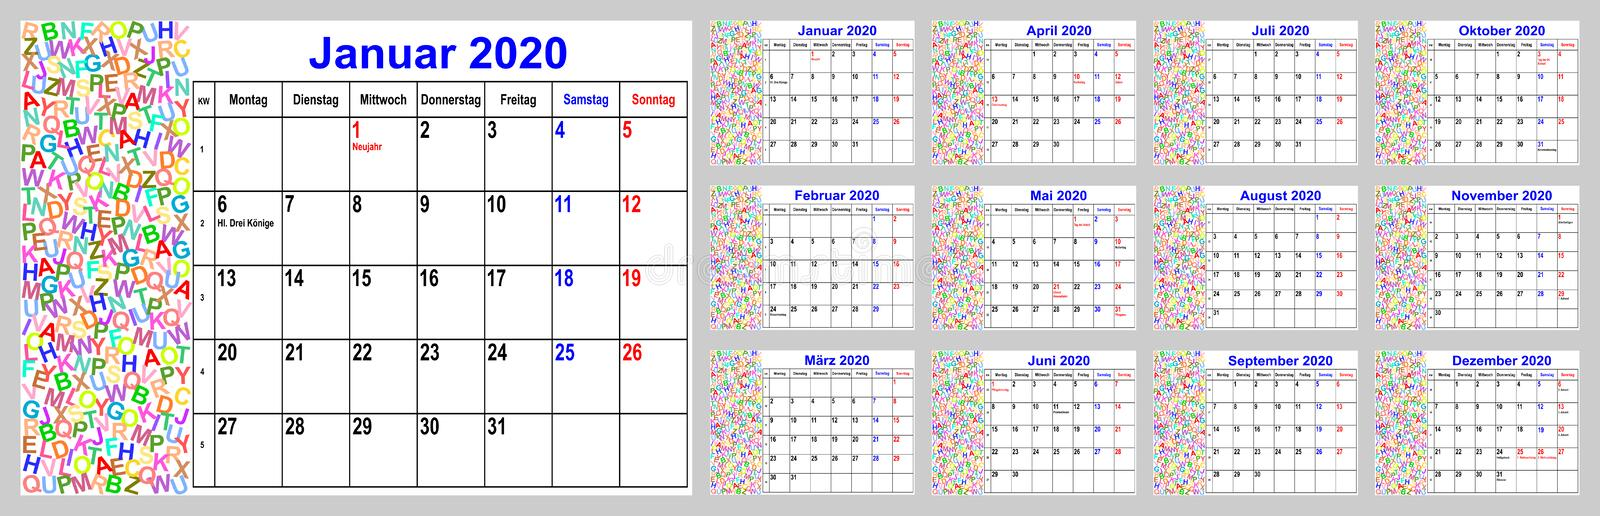 Calendrier 2020 Side Car Cross.Single Months Stock Illustrations 123 Single Months Stock